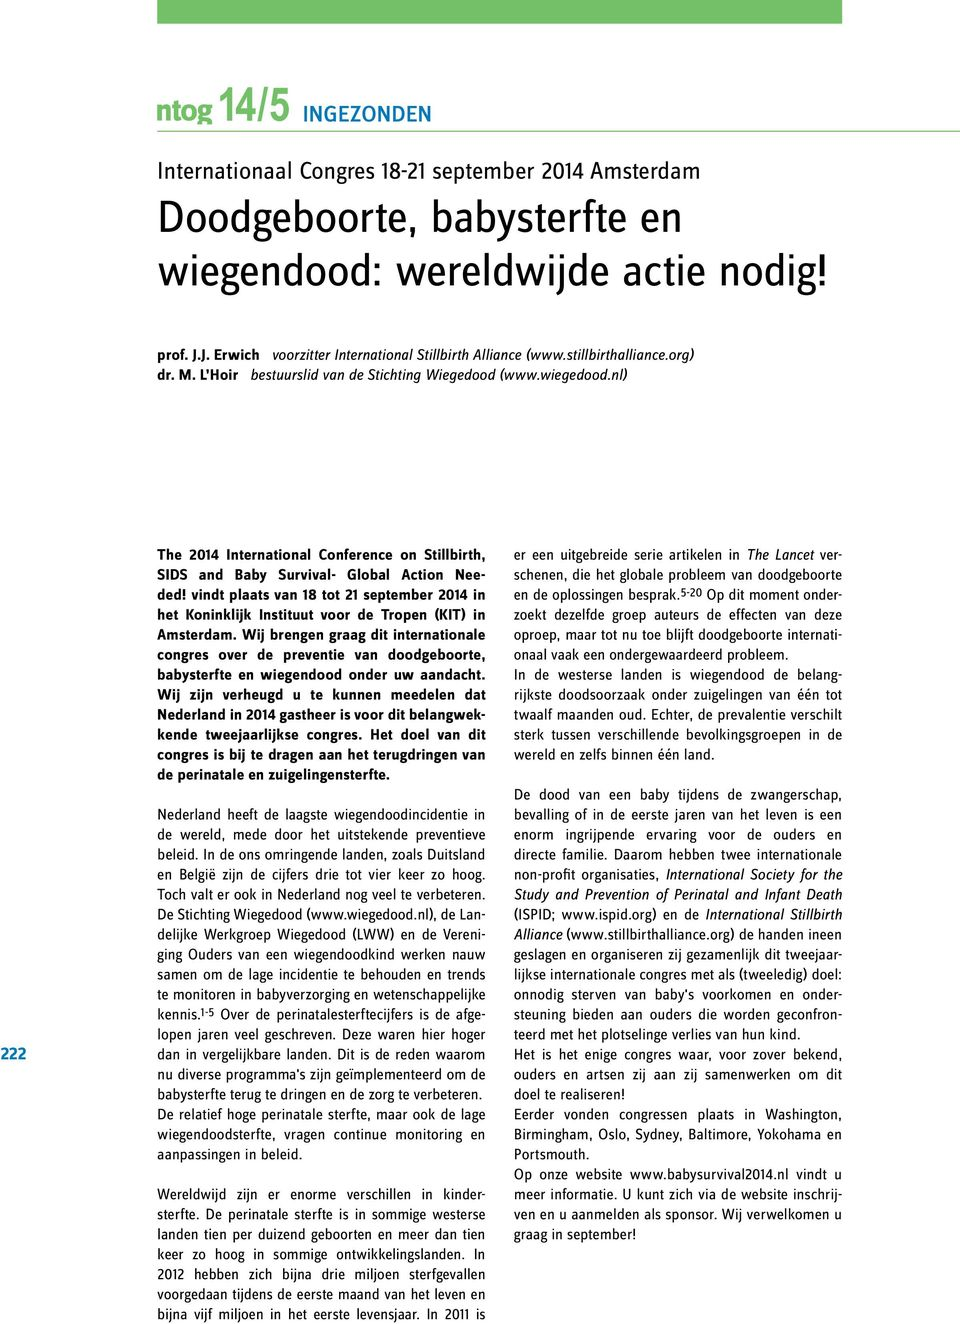 nl) 222 The 2014 International Conference on Stillbirth, SIDS and Baby Survival- Global Action Needed!